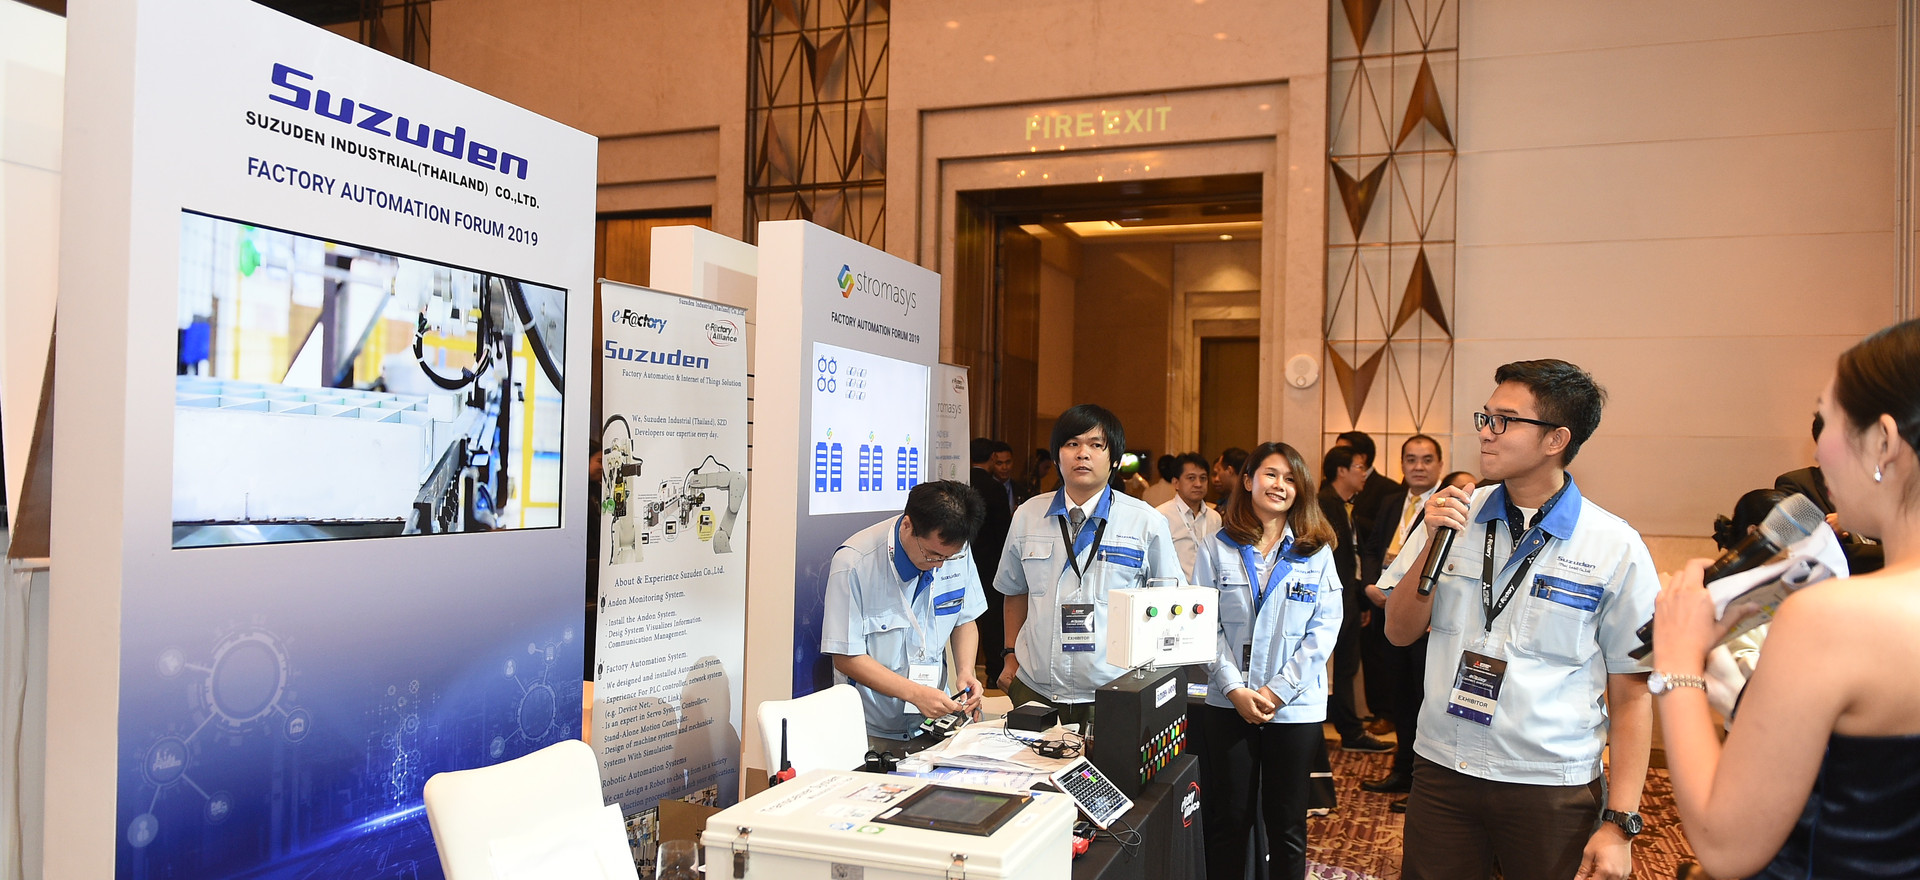 mitsubishi electric factory automation forum 2019